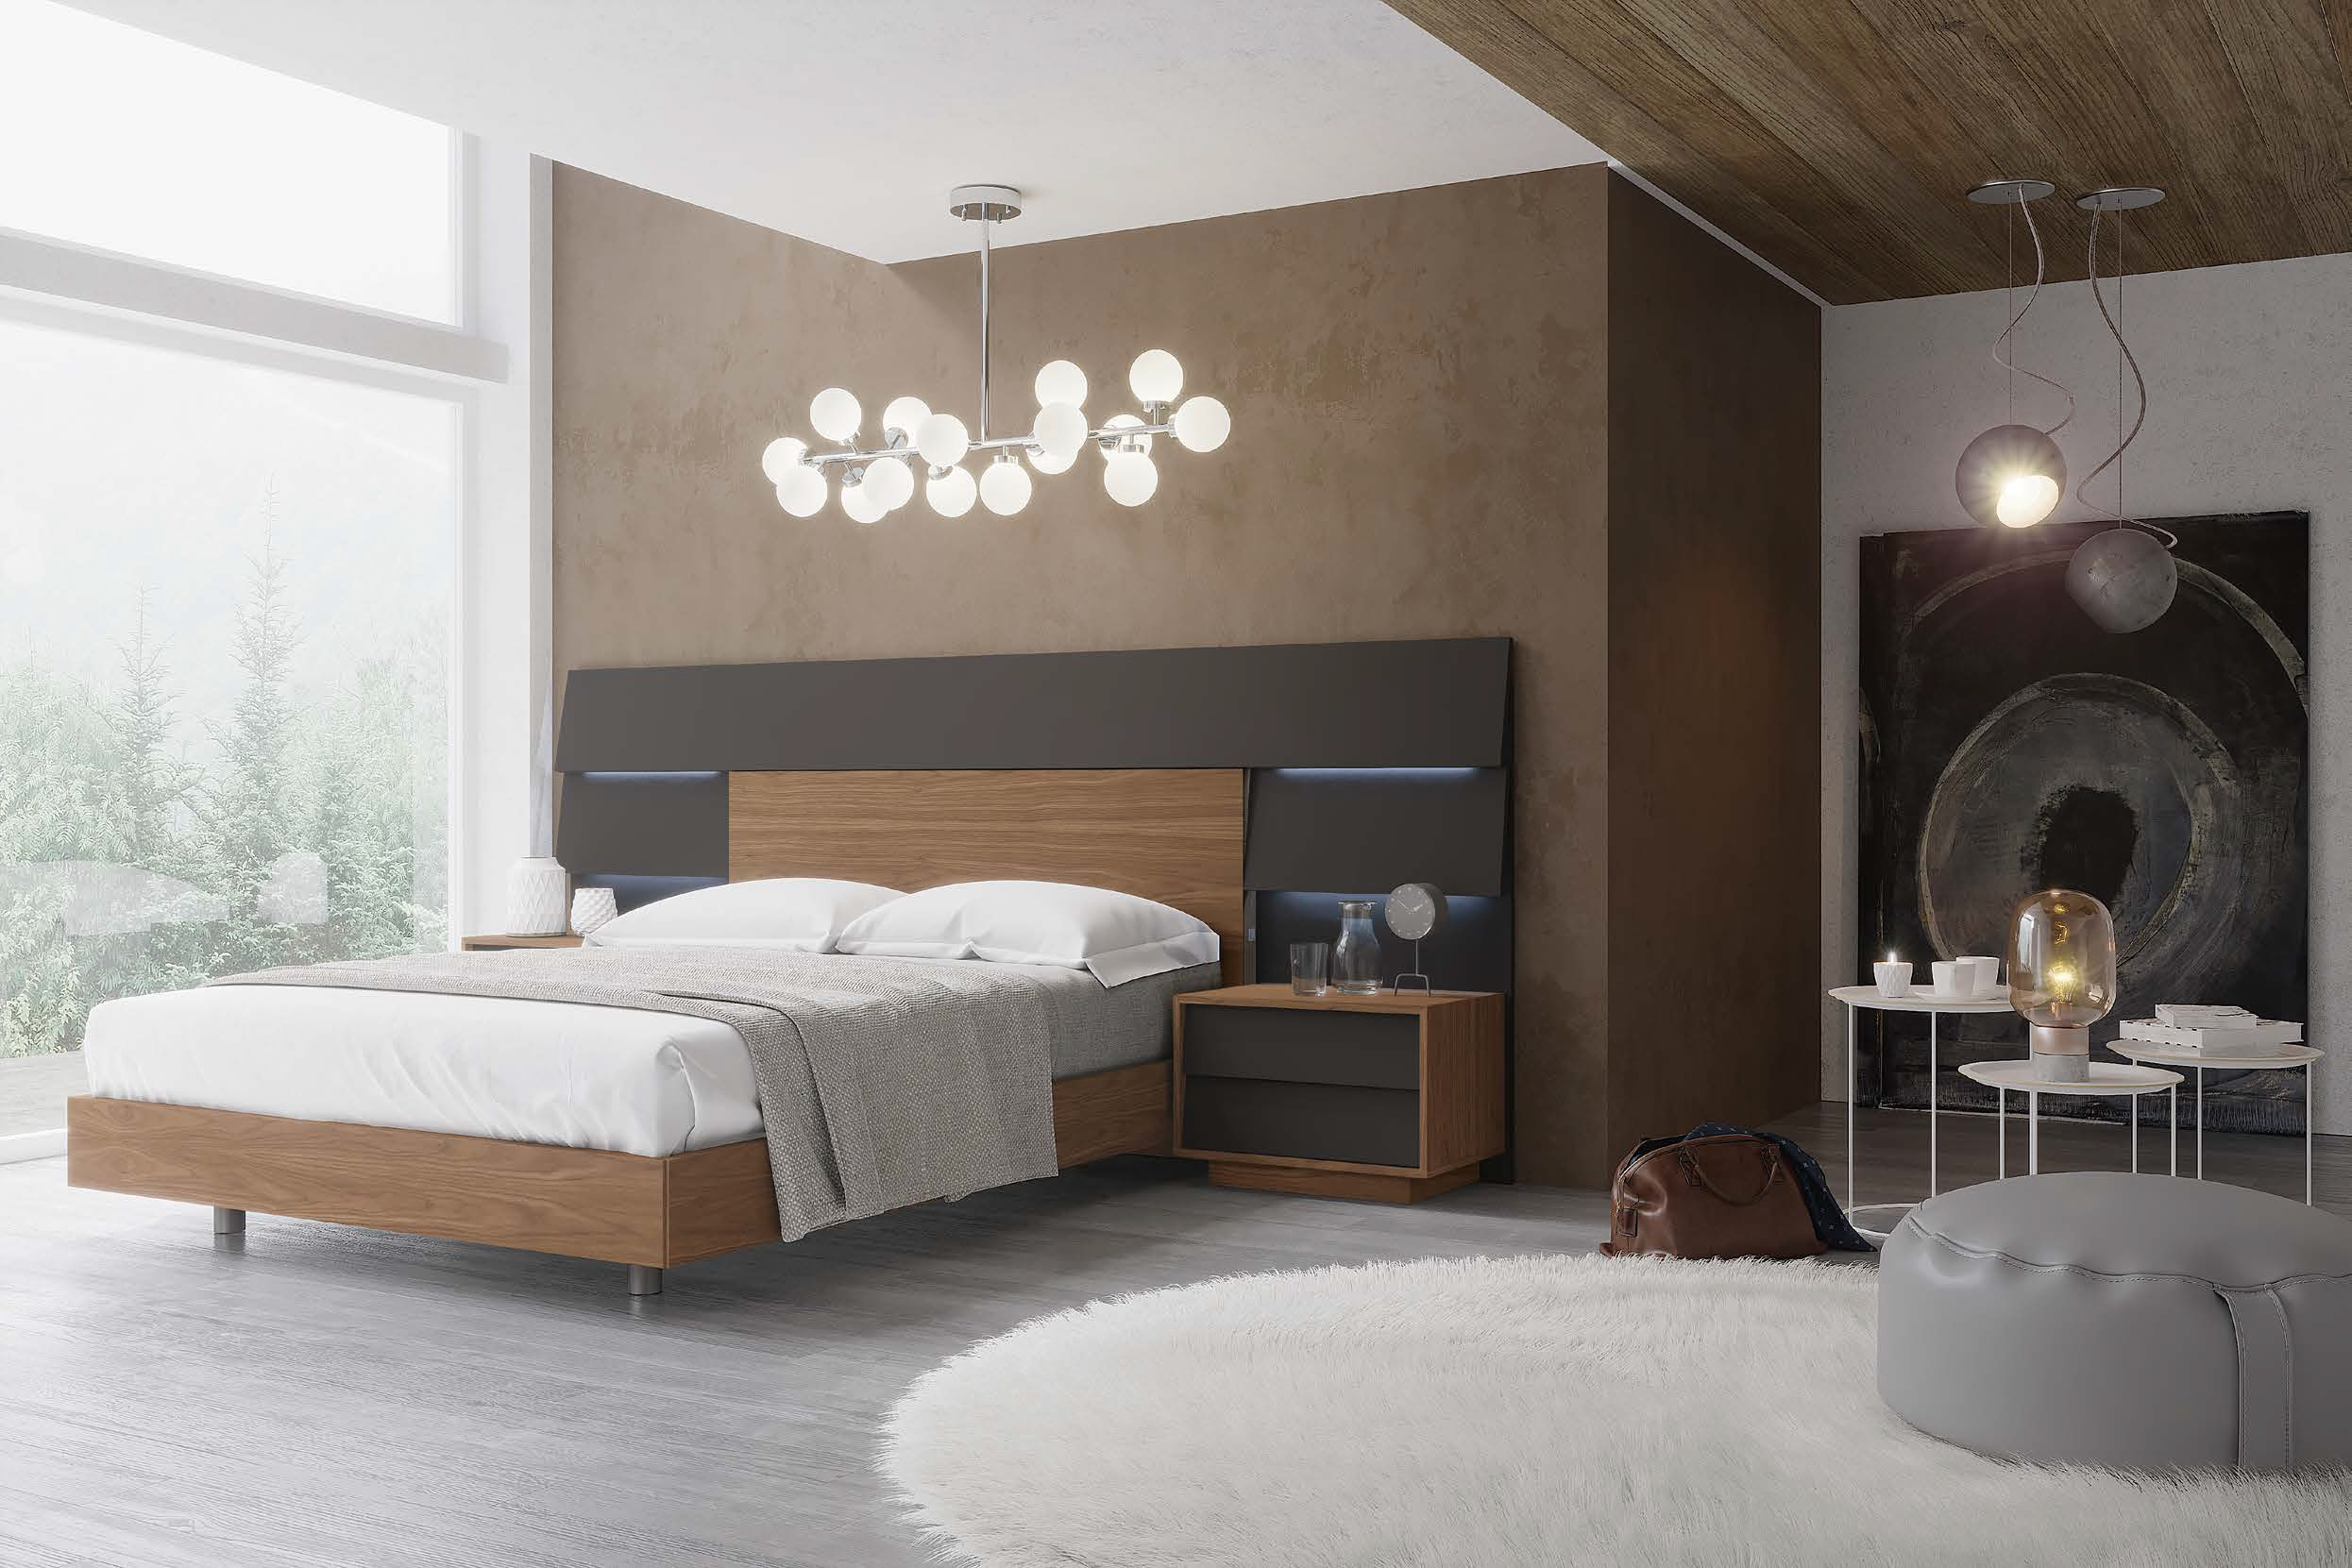 moderno-1-YOU-AND-ME-muebles-paco-caballero-633-5c9cfcdd82d37